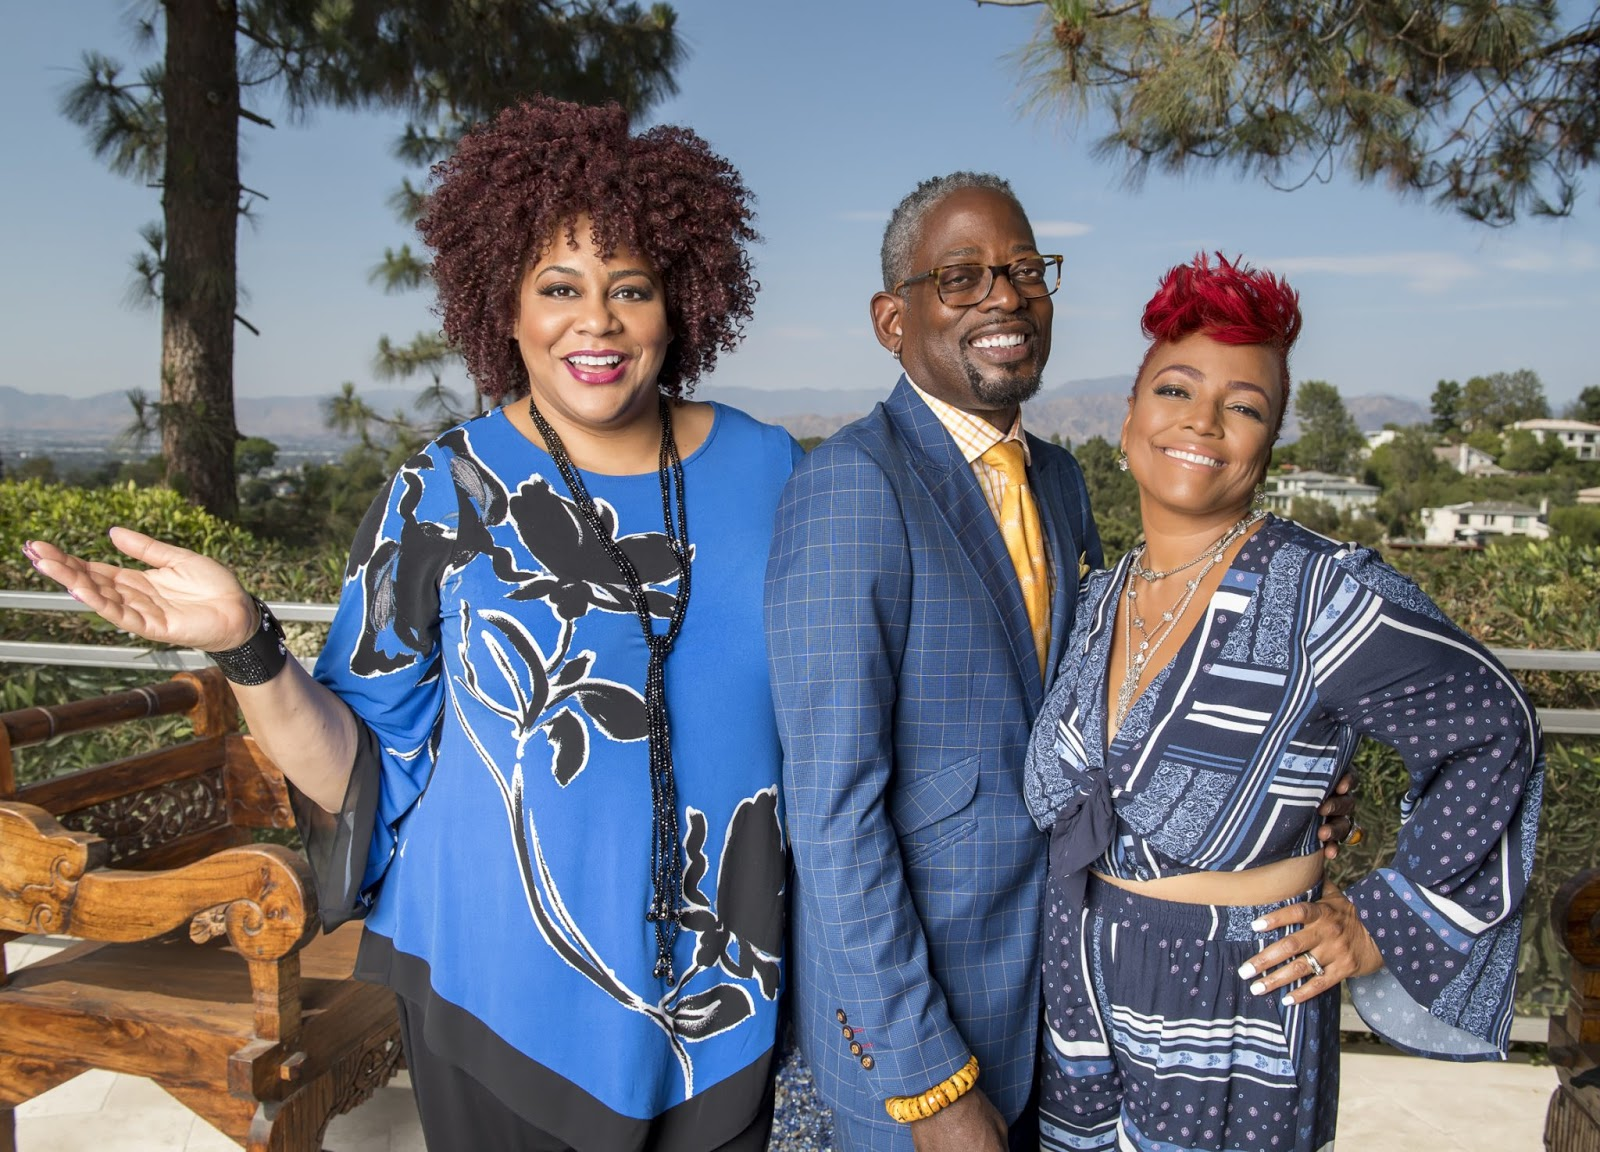 AMBITION BLISS: LIVING SINGLE TURNS 25